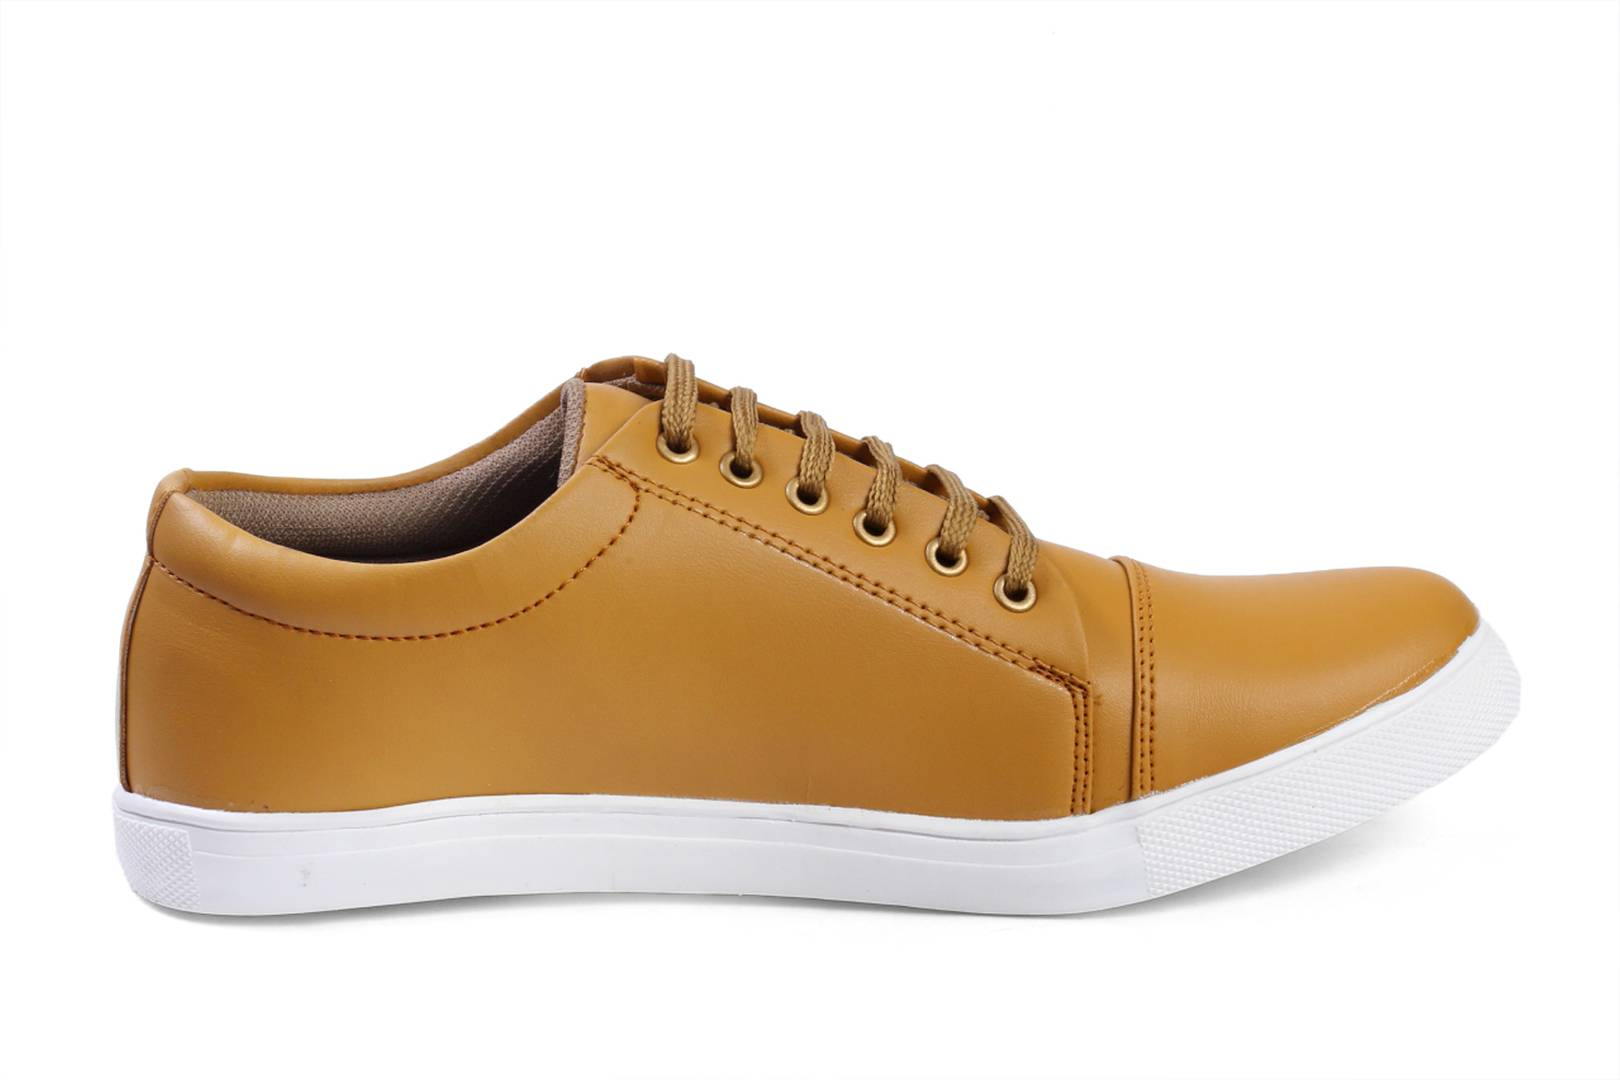 Khaki Synthetic Leather Sneakers Shoes for Men's